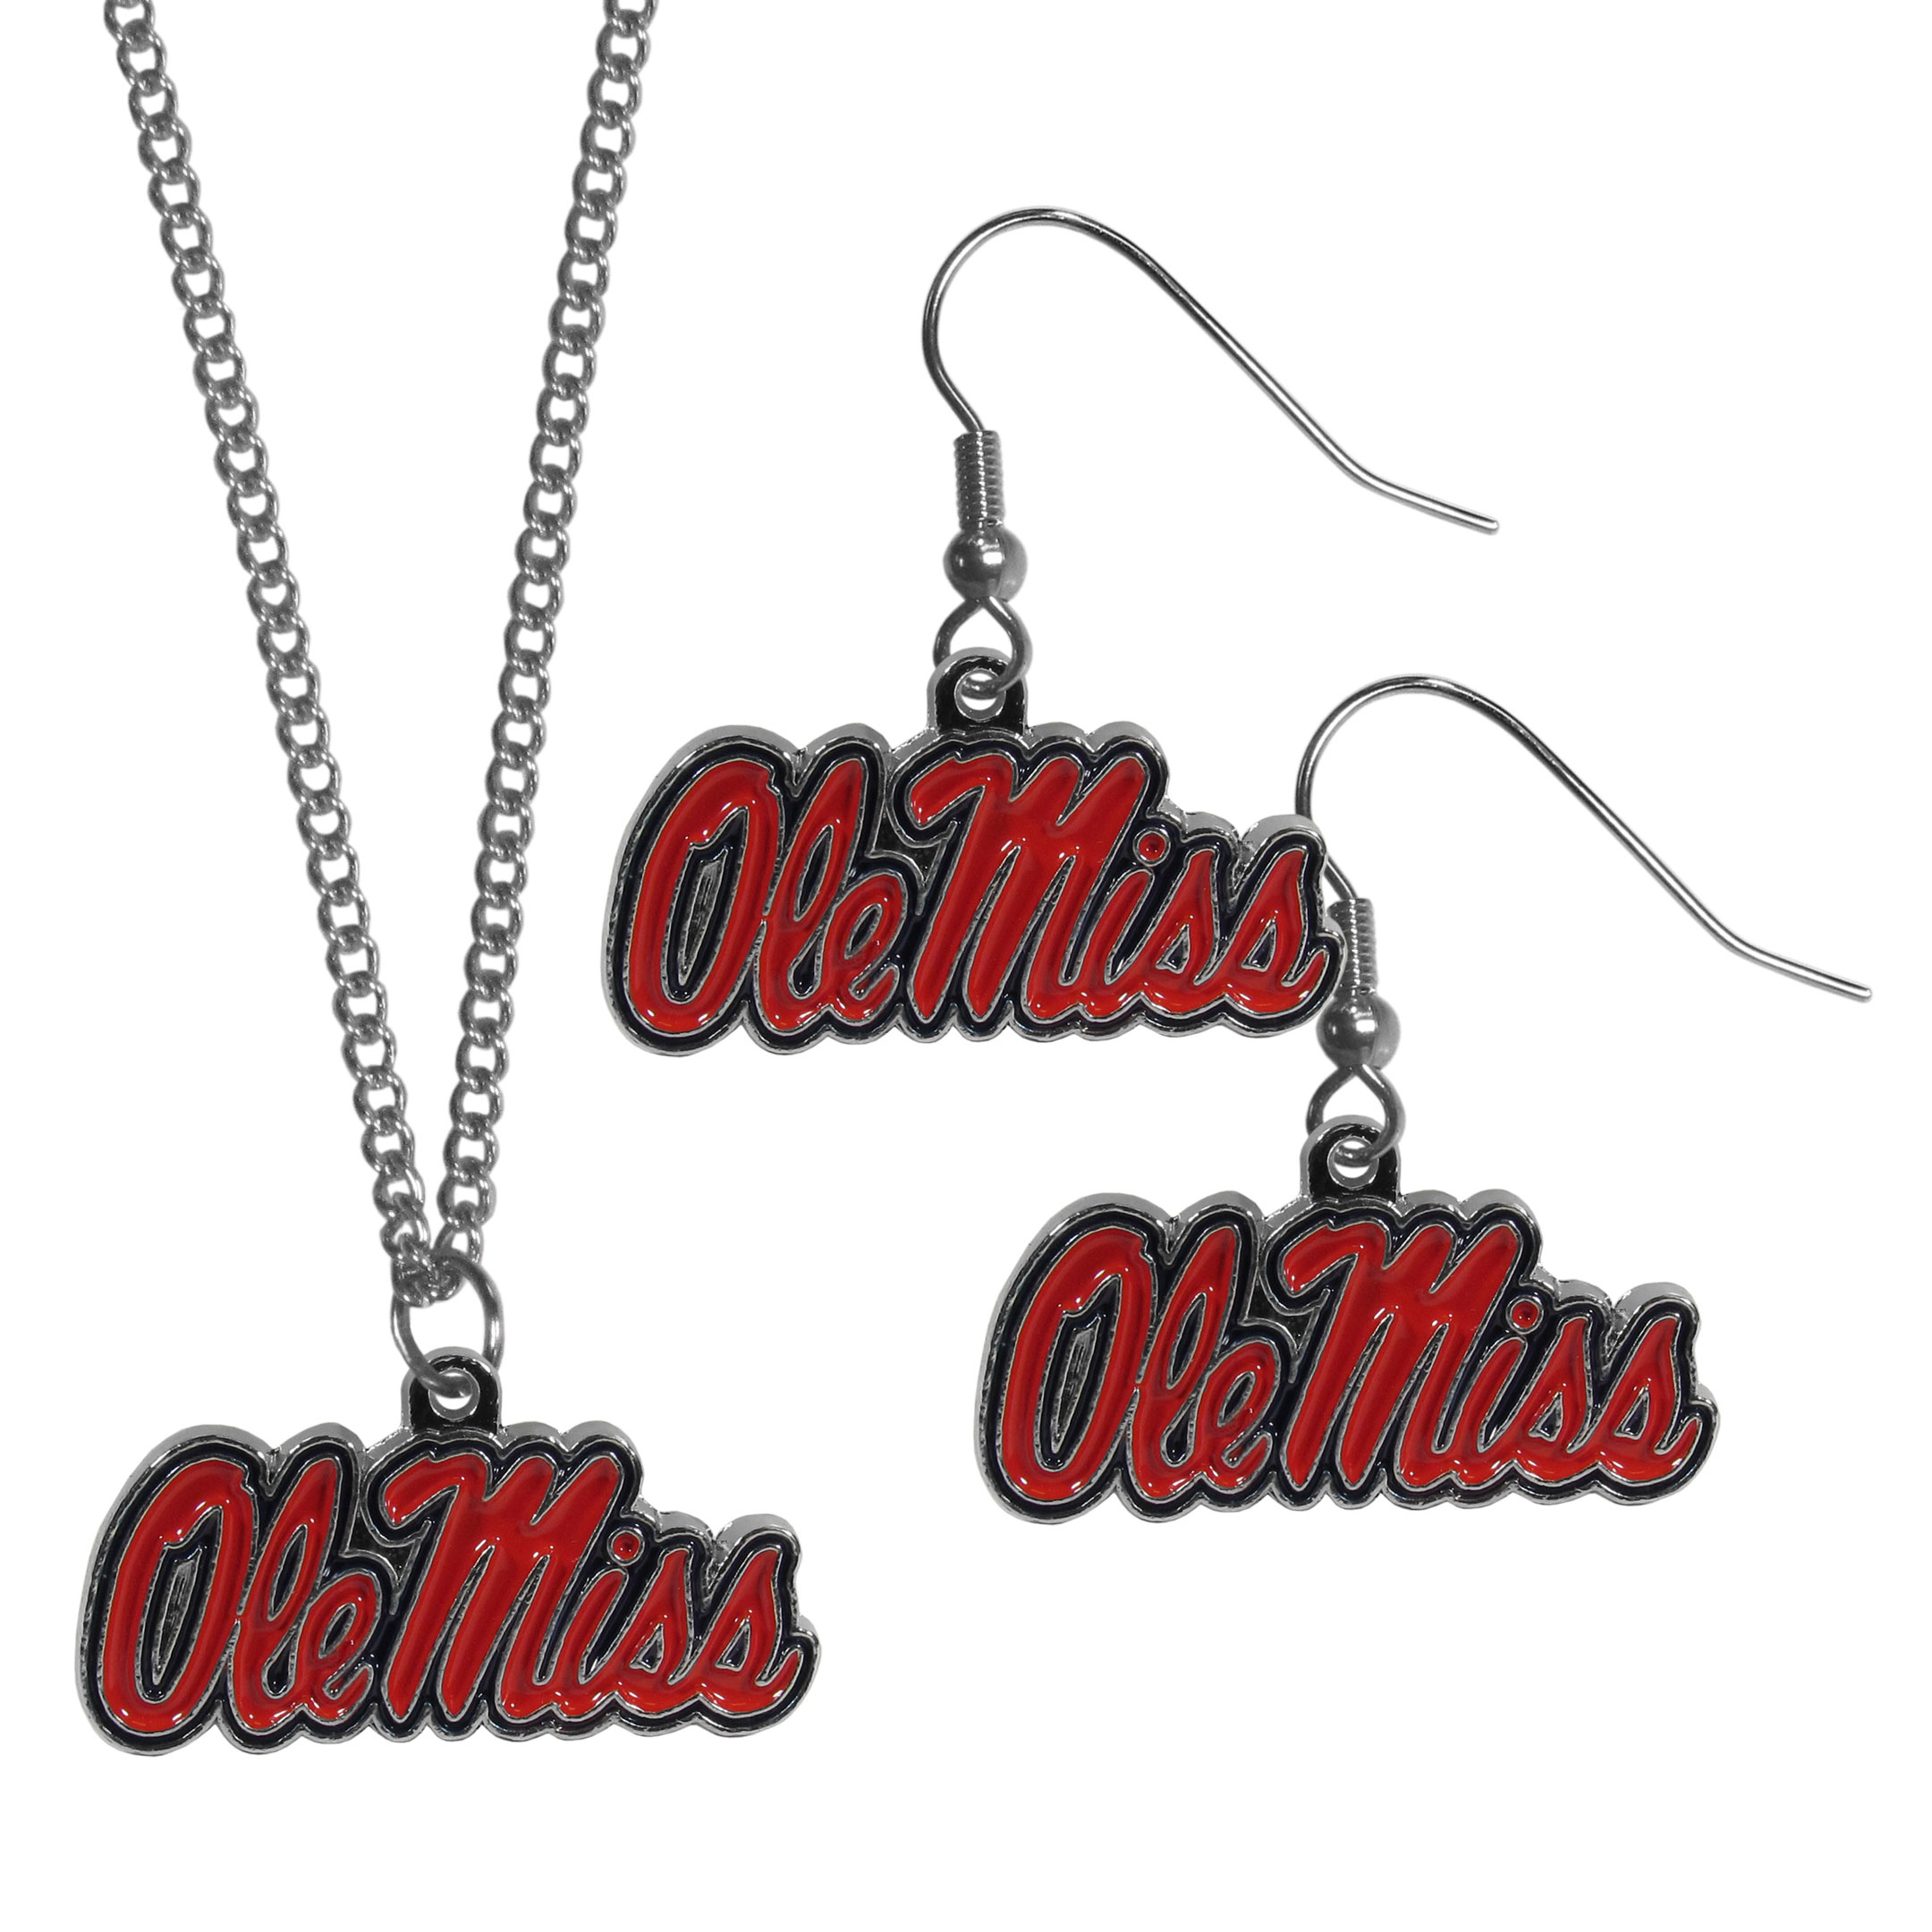 Mississippi Rebels Dangle Earrings and Chain Necklace Set - This classic jewelry set contains are most popular Mississippi Rebels dangle earrings and 22 inch chain necklace. The trendy, dangle earrings are lightweight and feature a fully cast metal team charm with enameled team colors. The matching necklace completes this fashion forward combo and is a spirited set that is perfect for game day but nice enough for everyday.